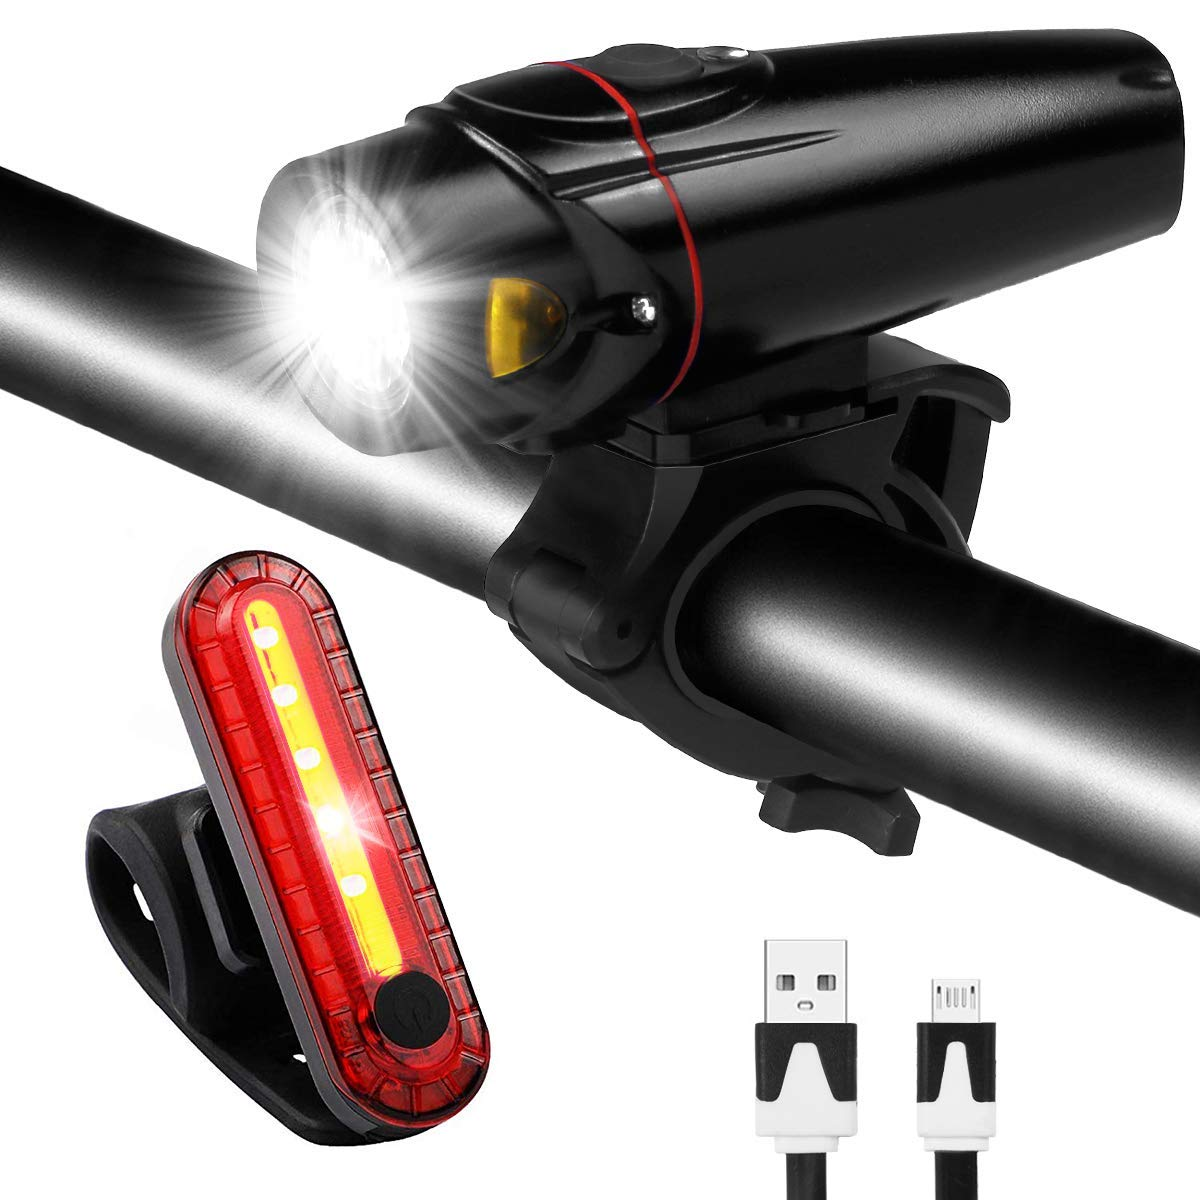 Bike Light Set USB Rechargeable Waterproof Bicycle Front and Rear Lights Safety LED Night Headlight Taillight for Mountain Road & Kids Bicycles